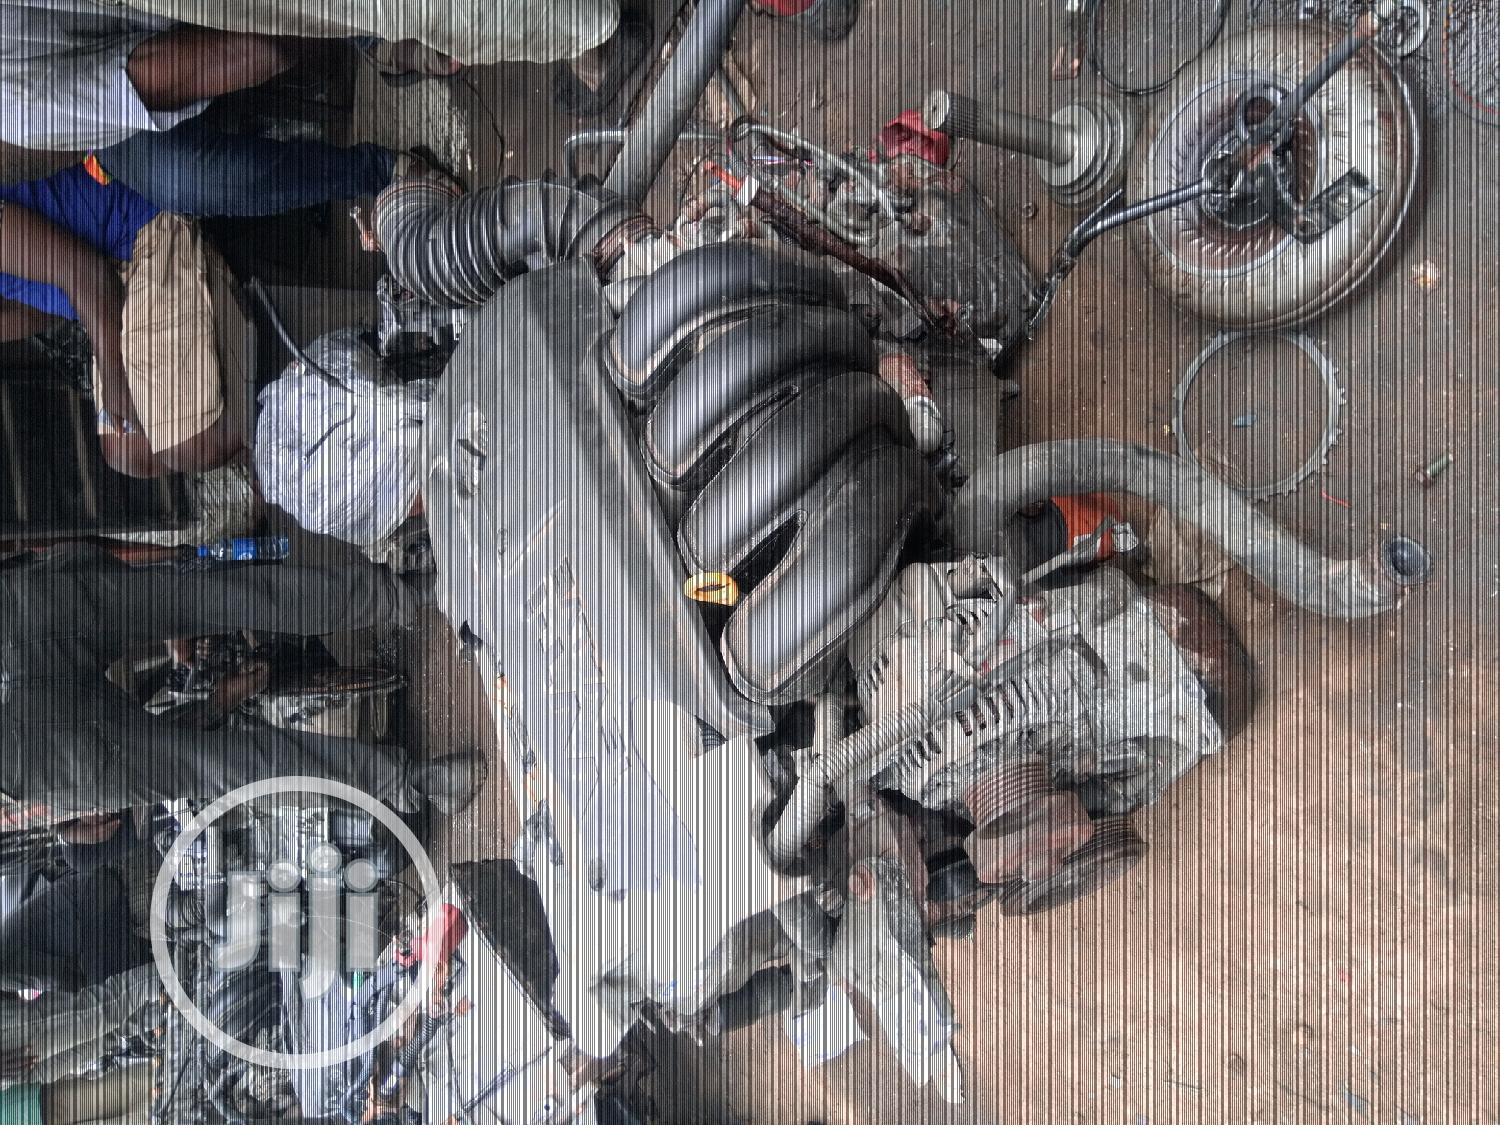 Toyota Corolla 1zz   Vehicle Parts & Accessories for sale in Mushin, Lagos State, Nigeria